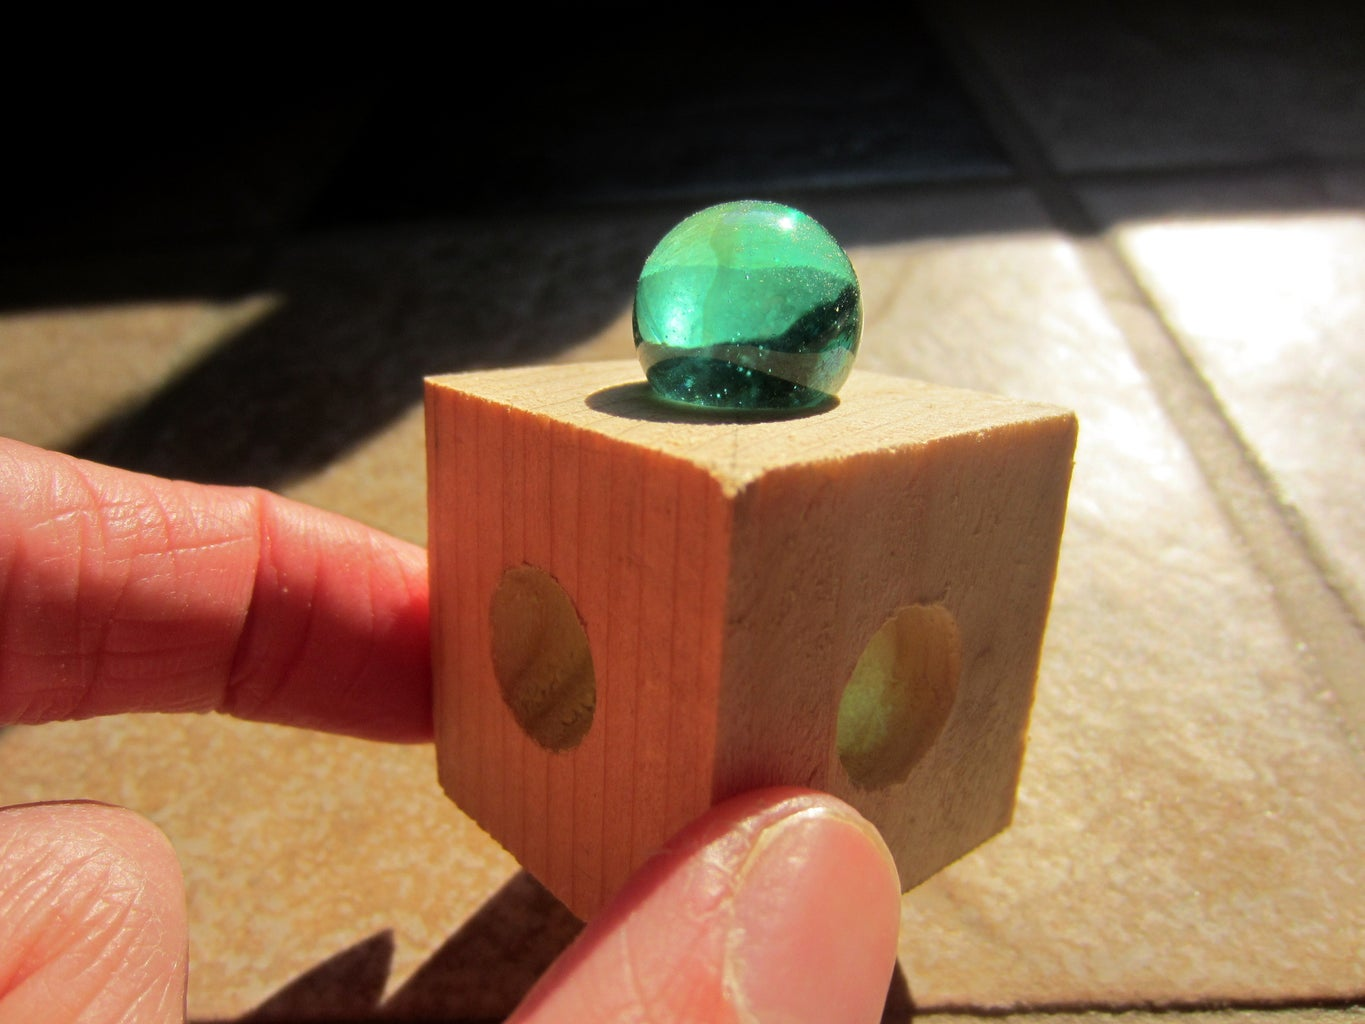 Cut a Cube and Drill Holes